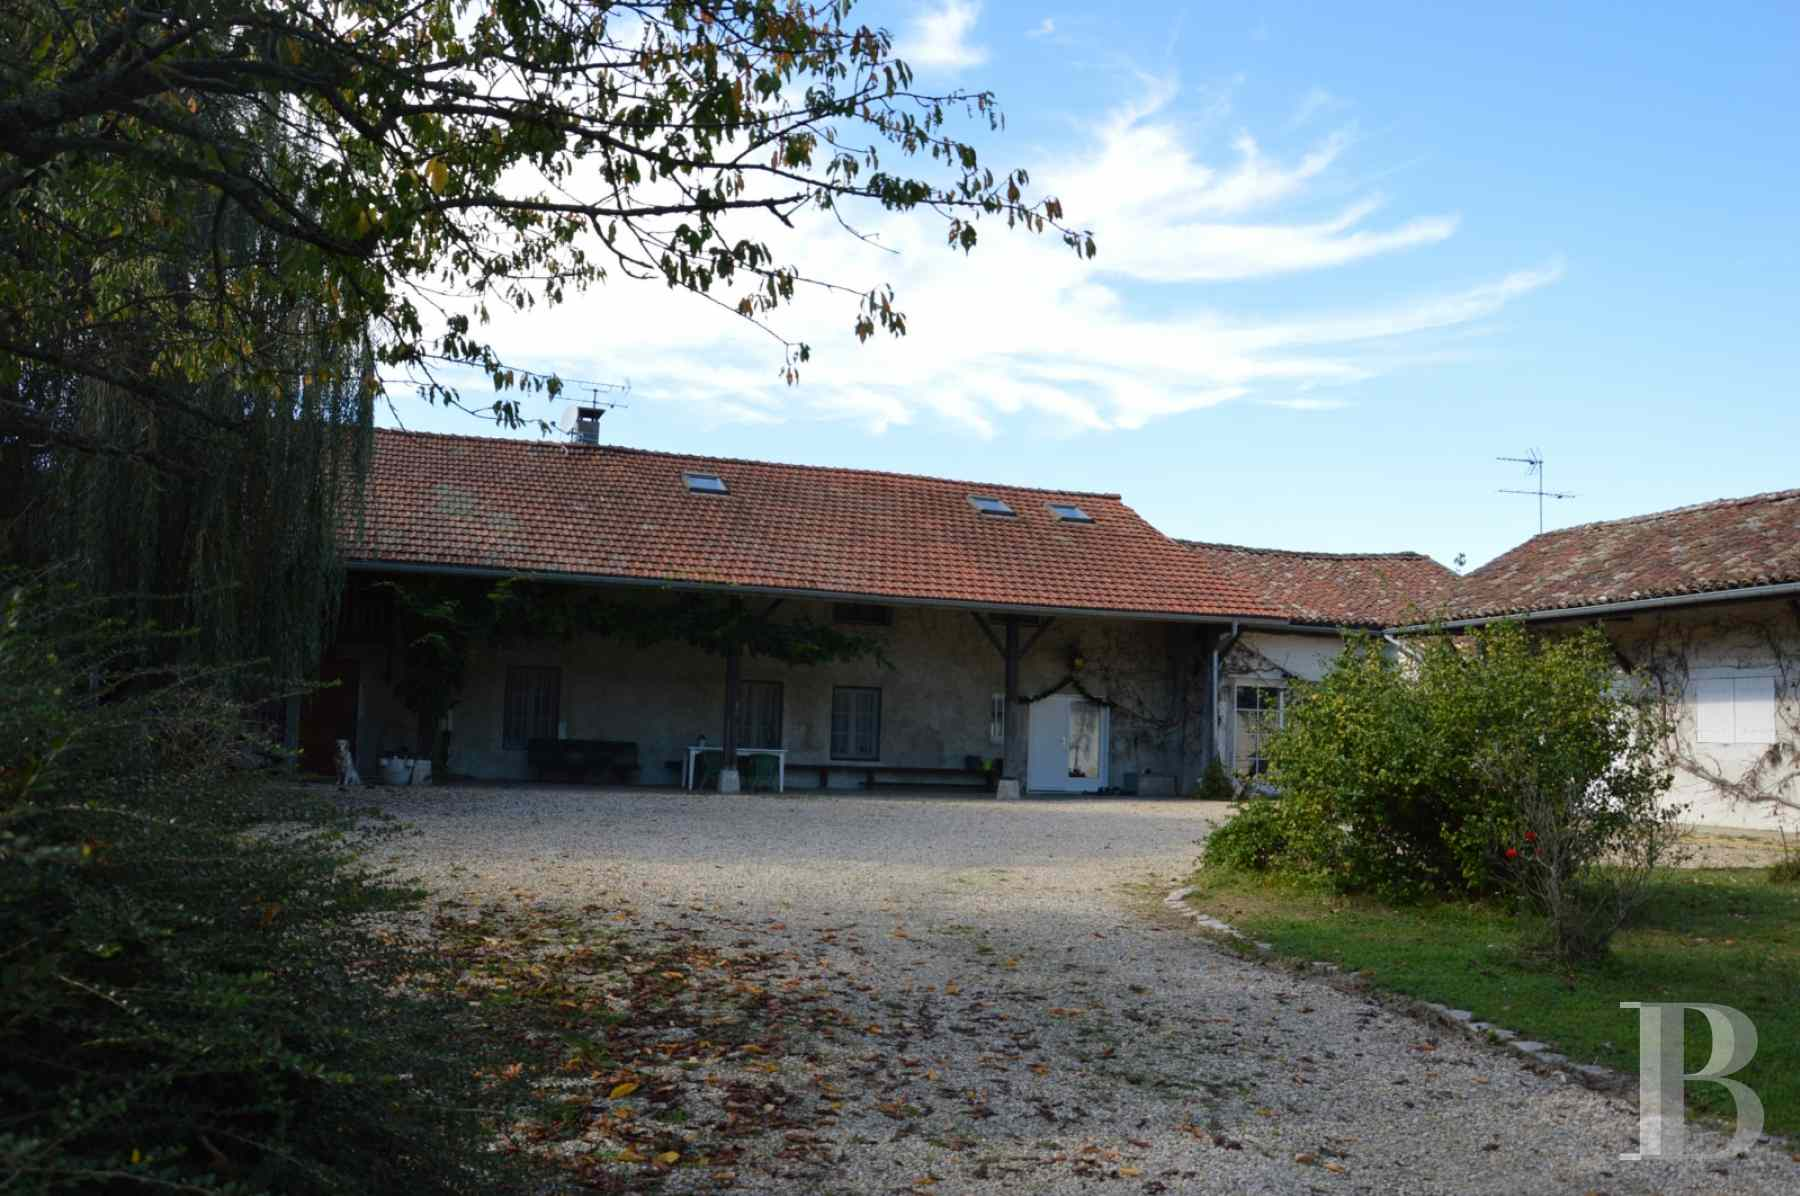 character properties France rhones alps farmhouse renovated - 4 zoom